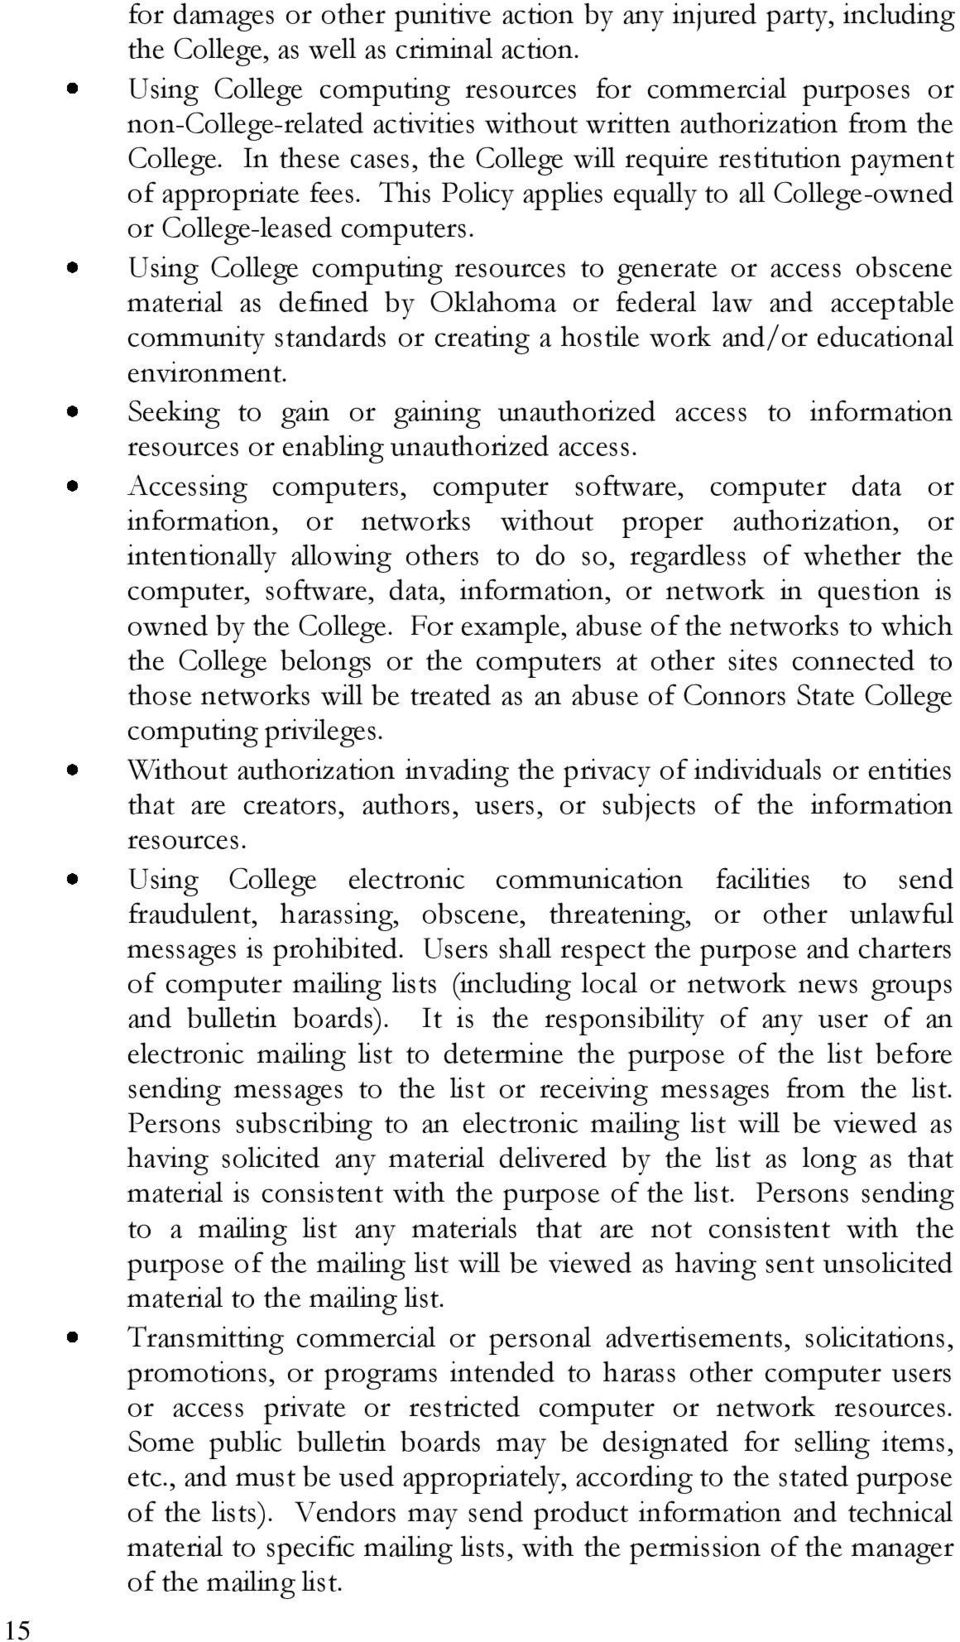 In these cases, the College will require restitution payment of appropriate fees. This Policy applies equally to all College-owned or College-leased computers.